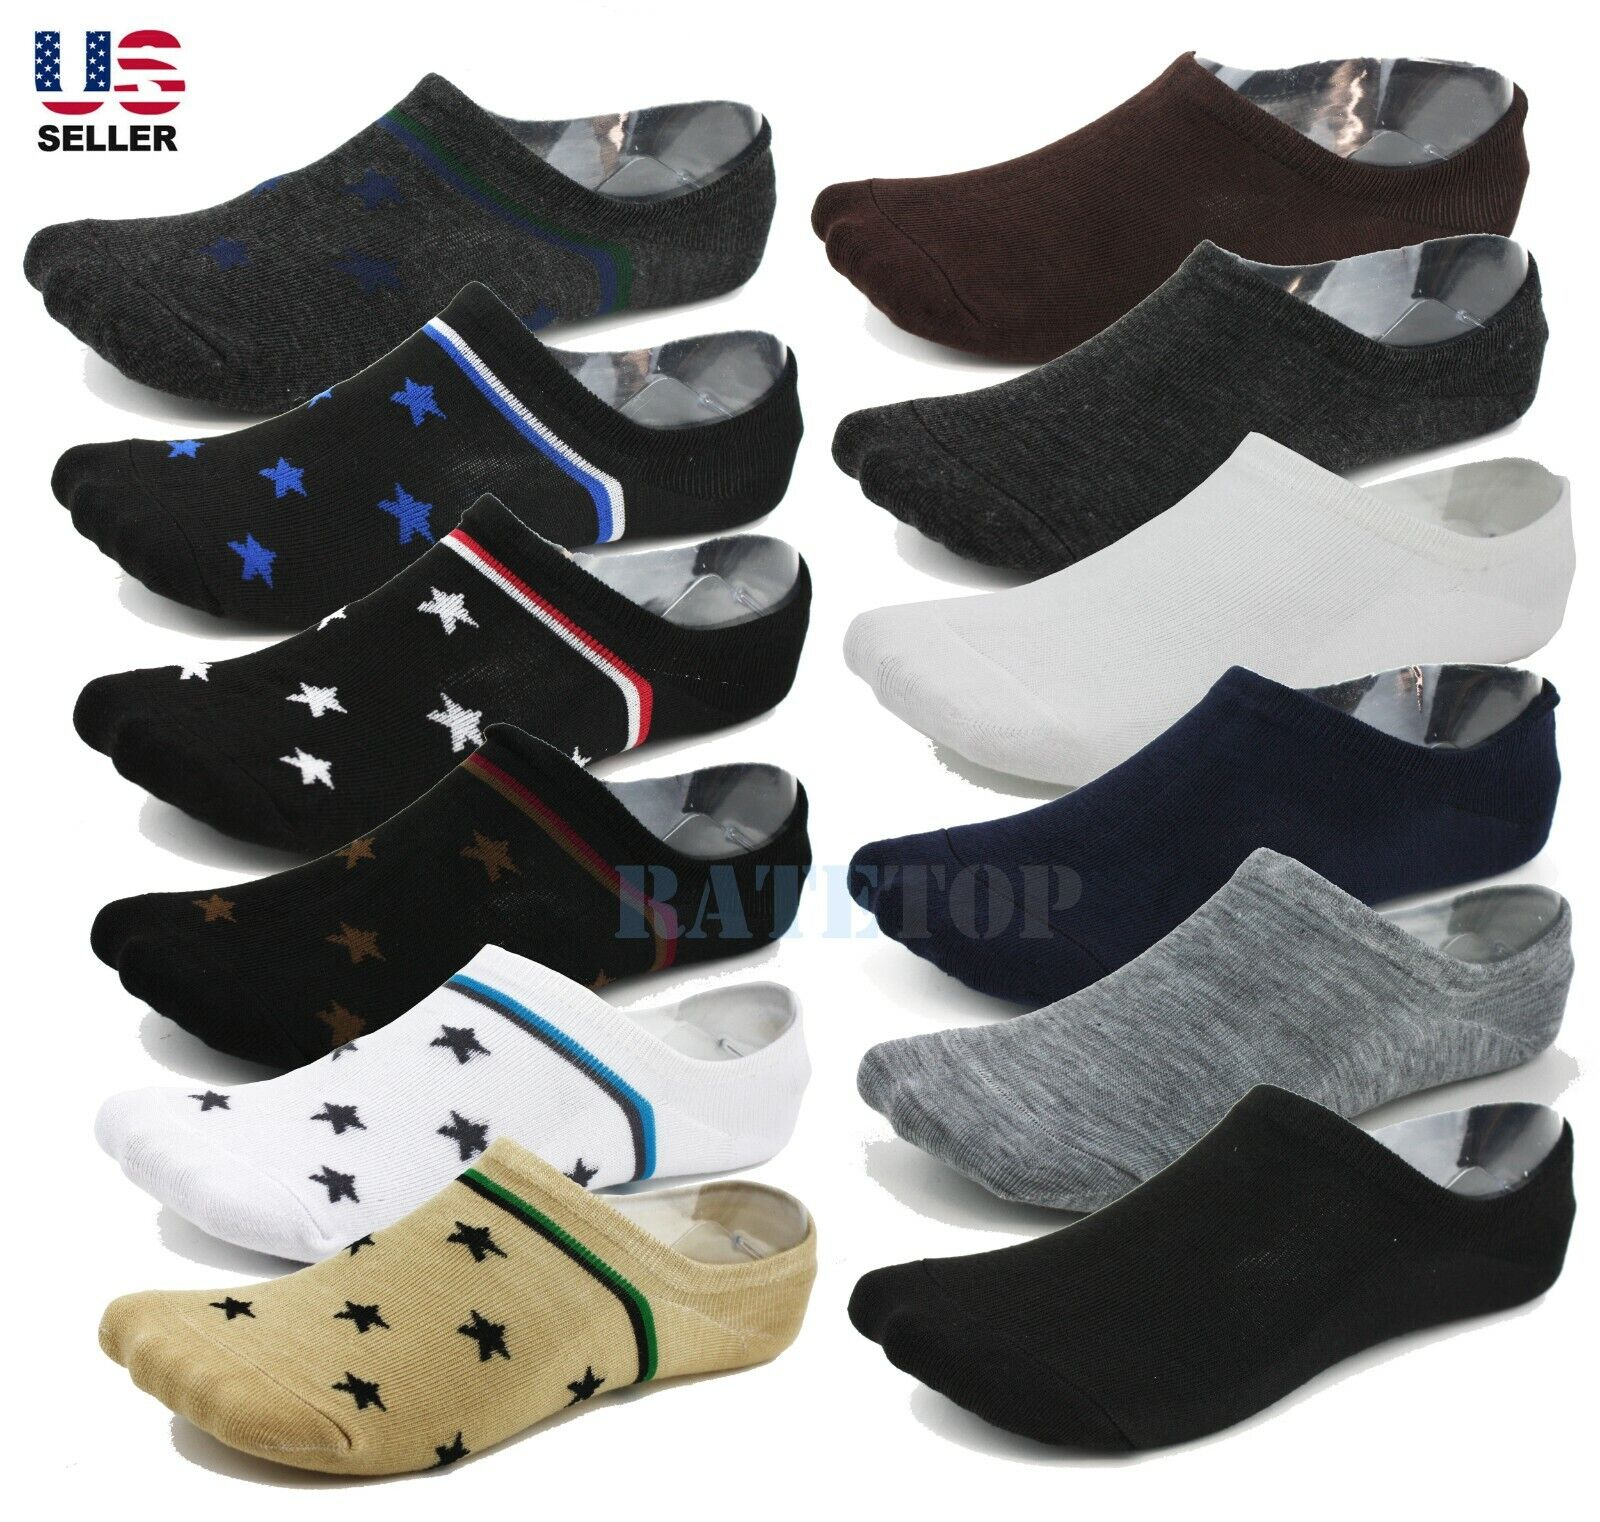 Lot 6-Pack Mens Low Cut No Show Socks Invisible Loafer Boat Ankle Cotton 7-10 Clothing, Shoes & Accessories